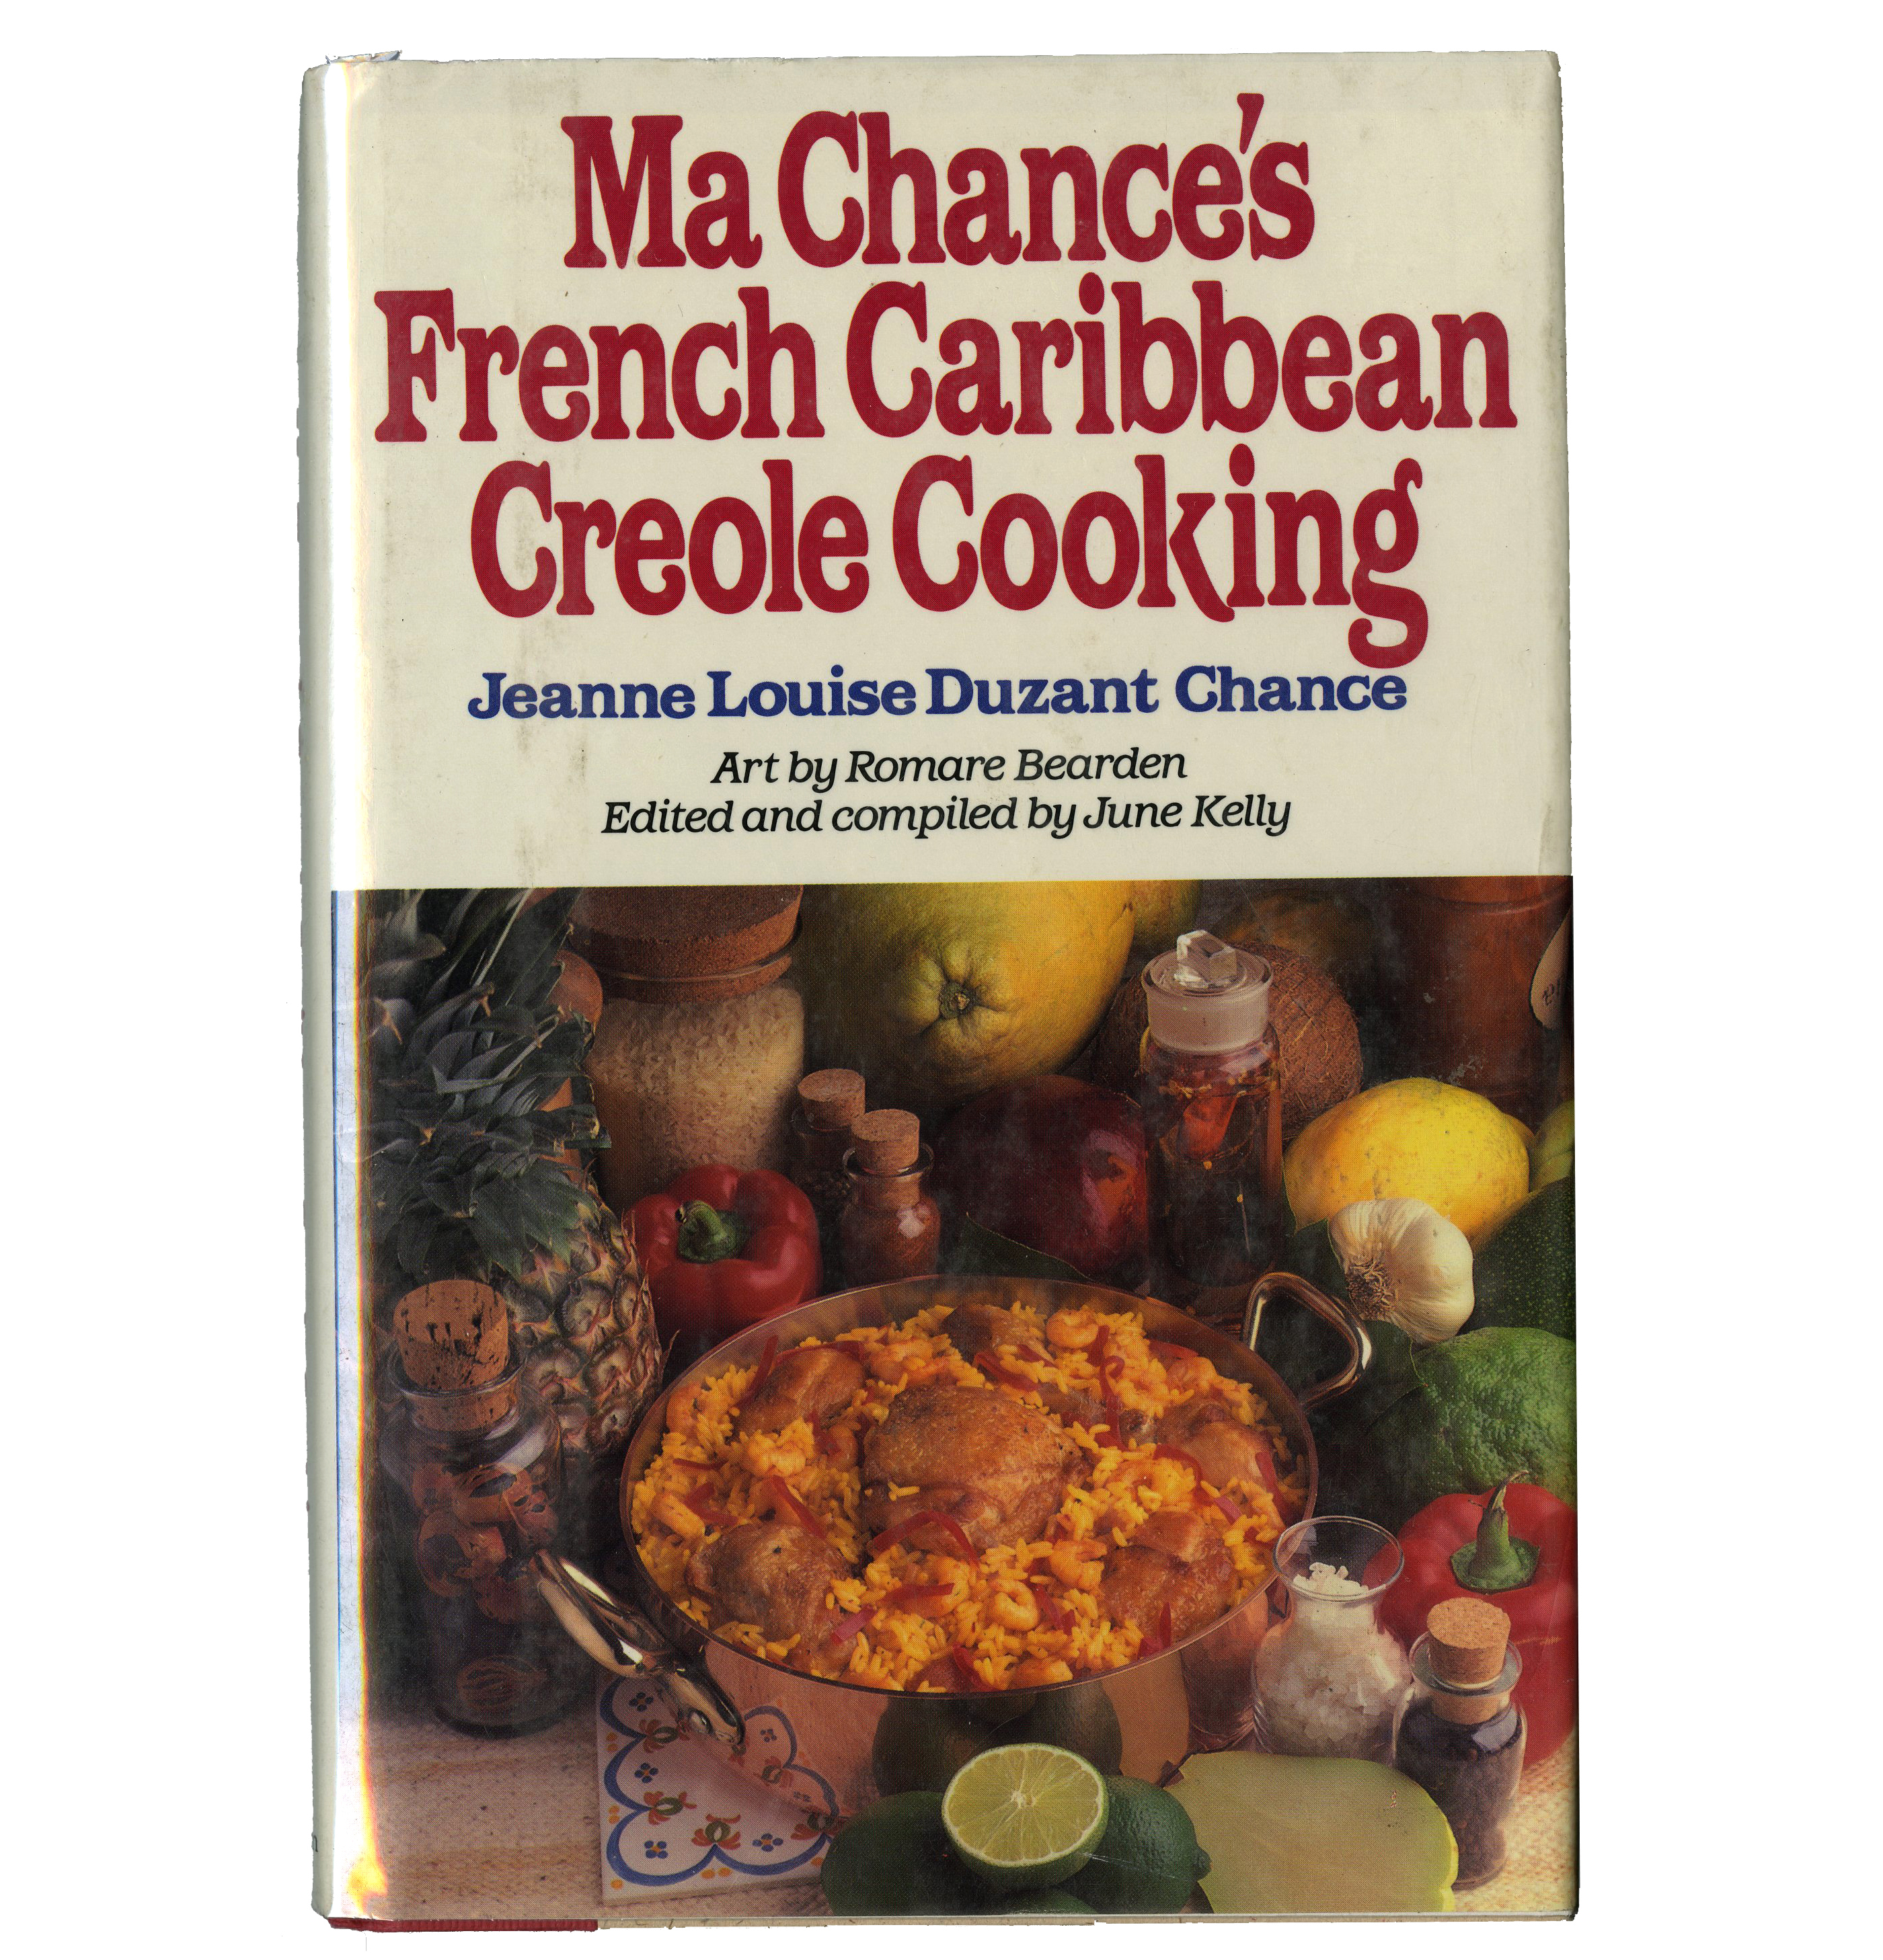 Ma chance s french caribbean creole cooking special - French creole cuisine ...